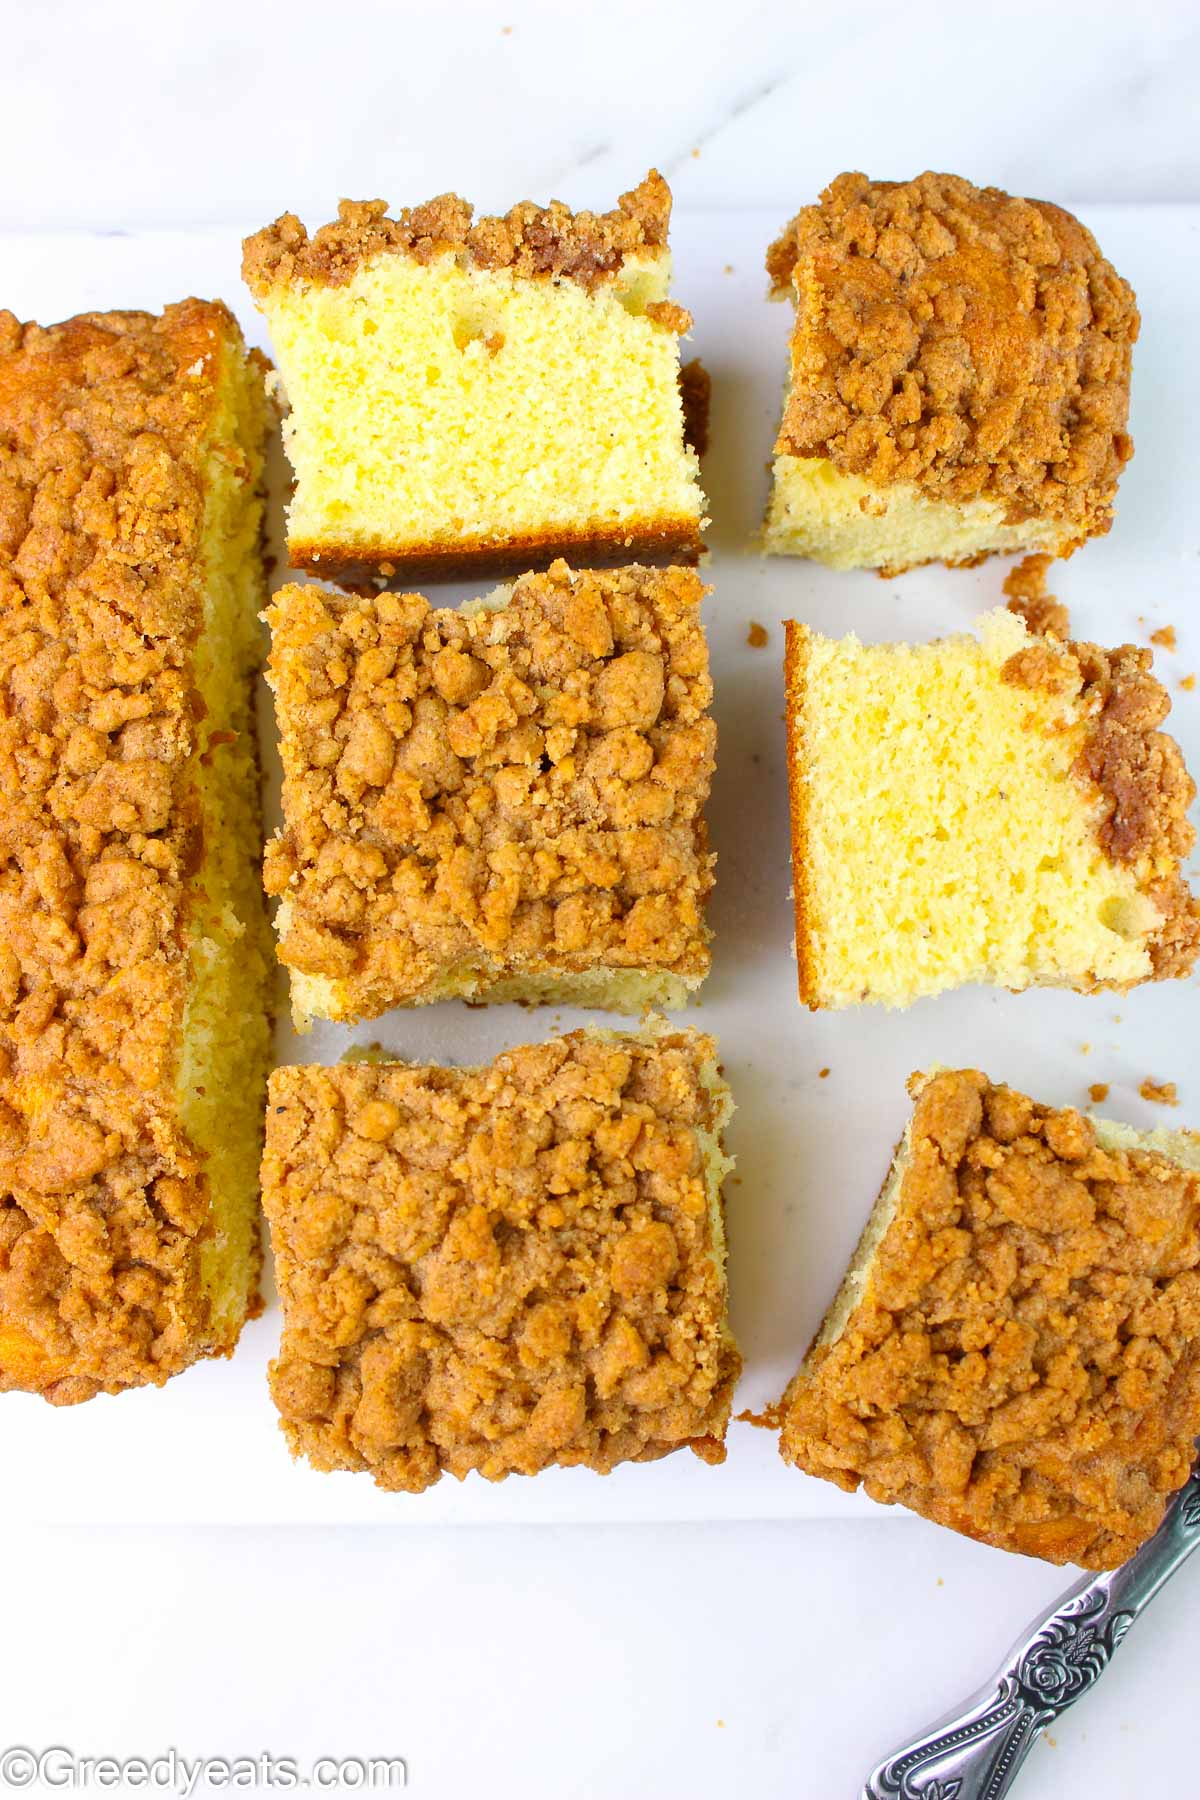 Fluffy homemade Sour Cream Cake topped with crunchy streusel topping